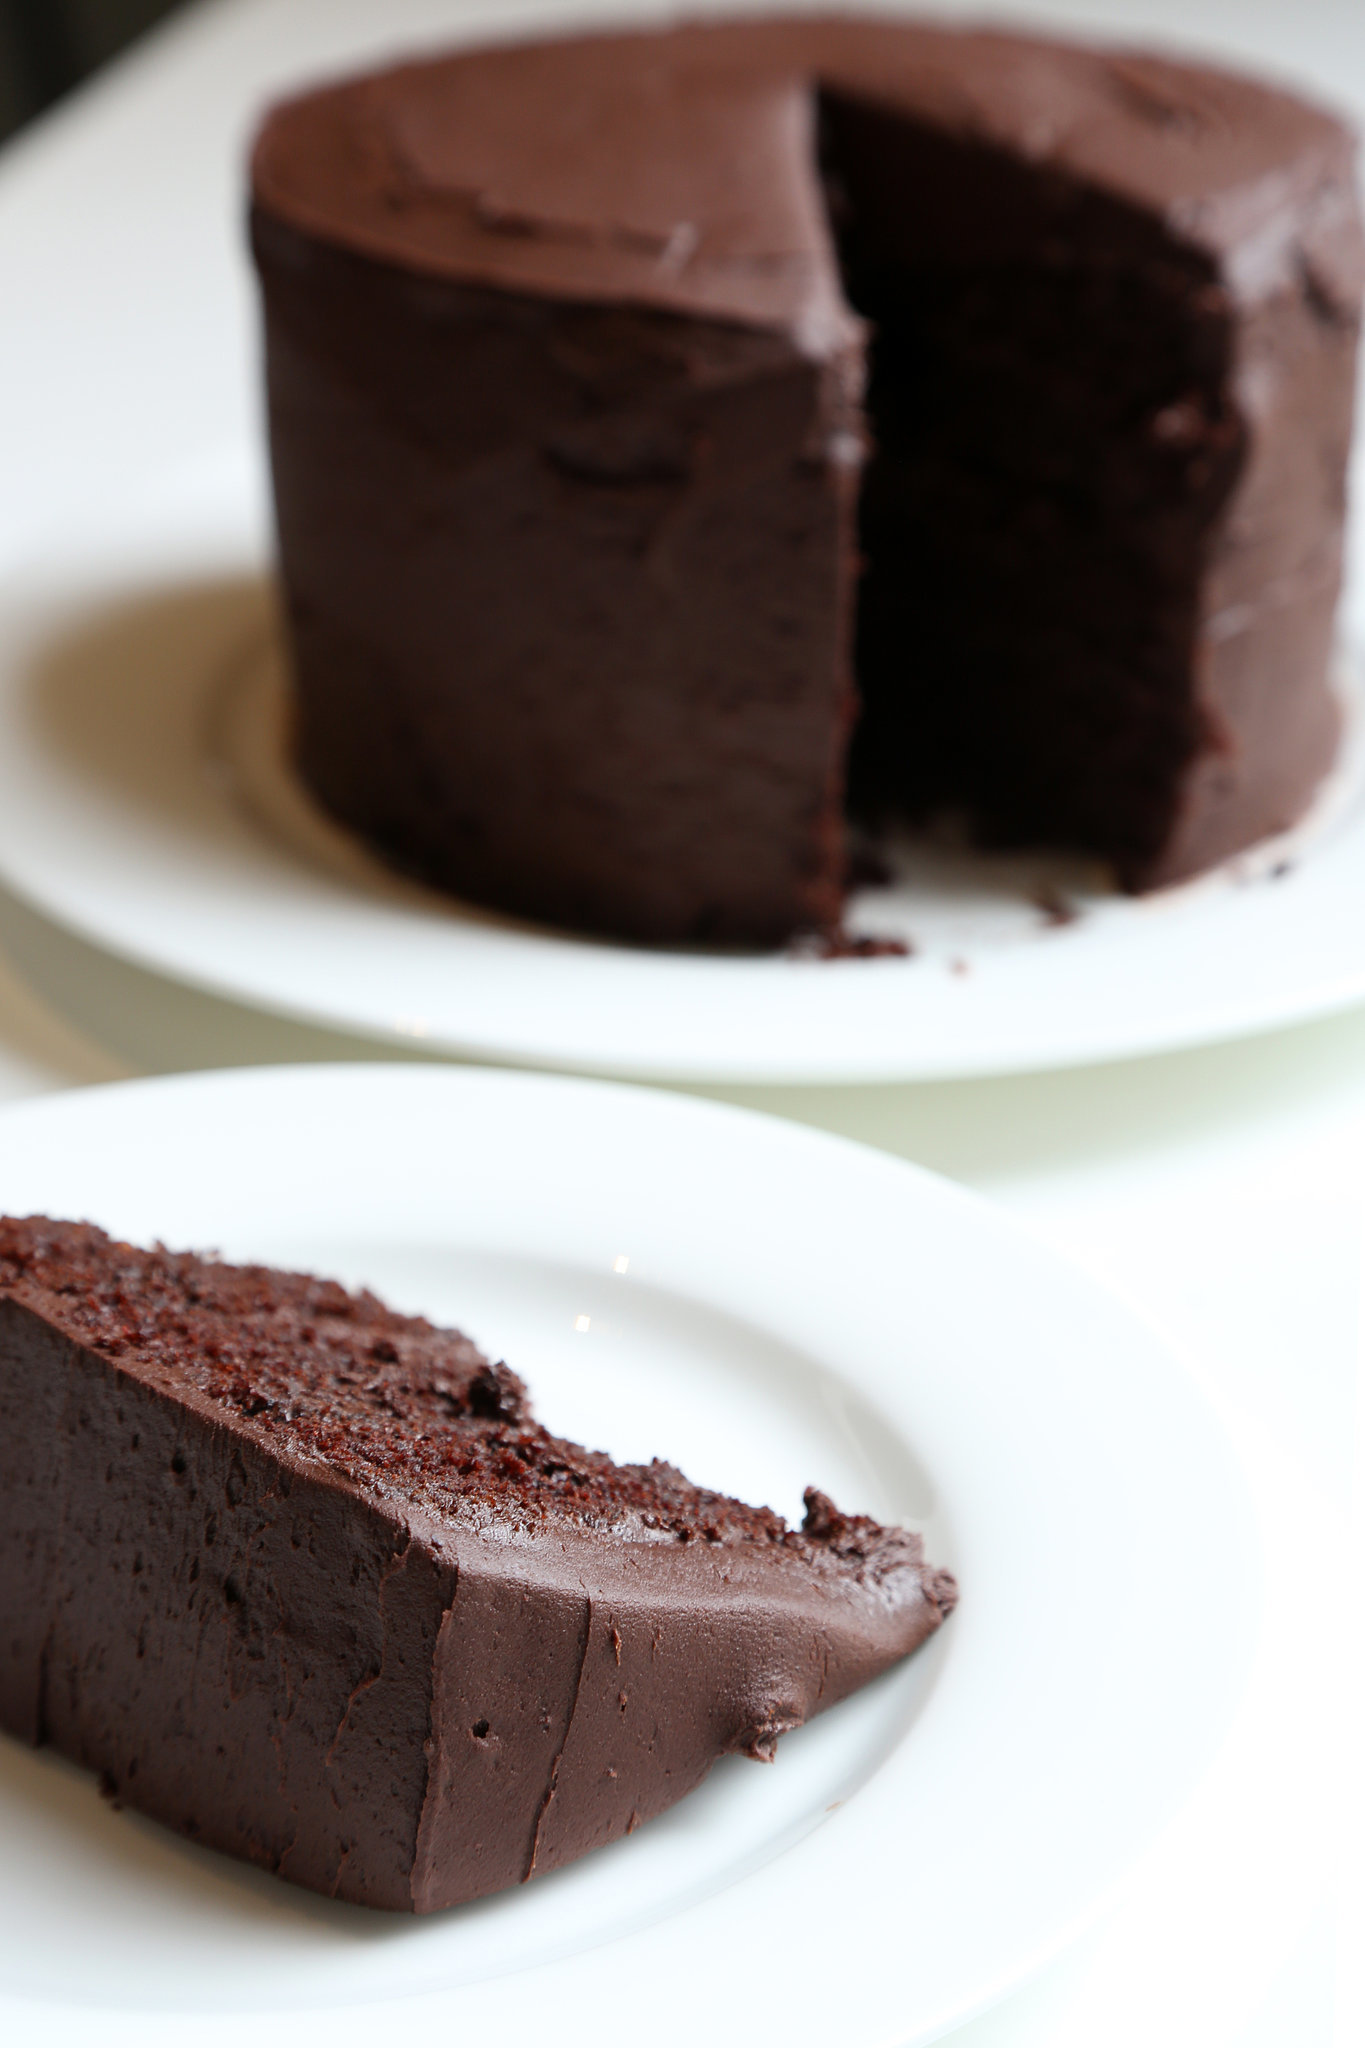 Chocolate Cake With Chocolate Buttercream Recipe | POPSUGAR Food